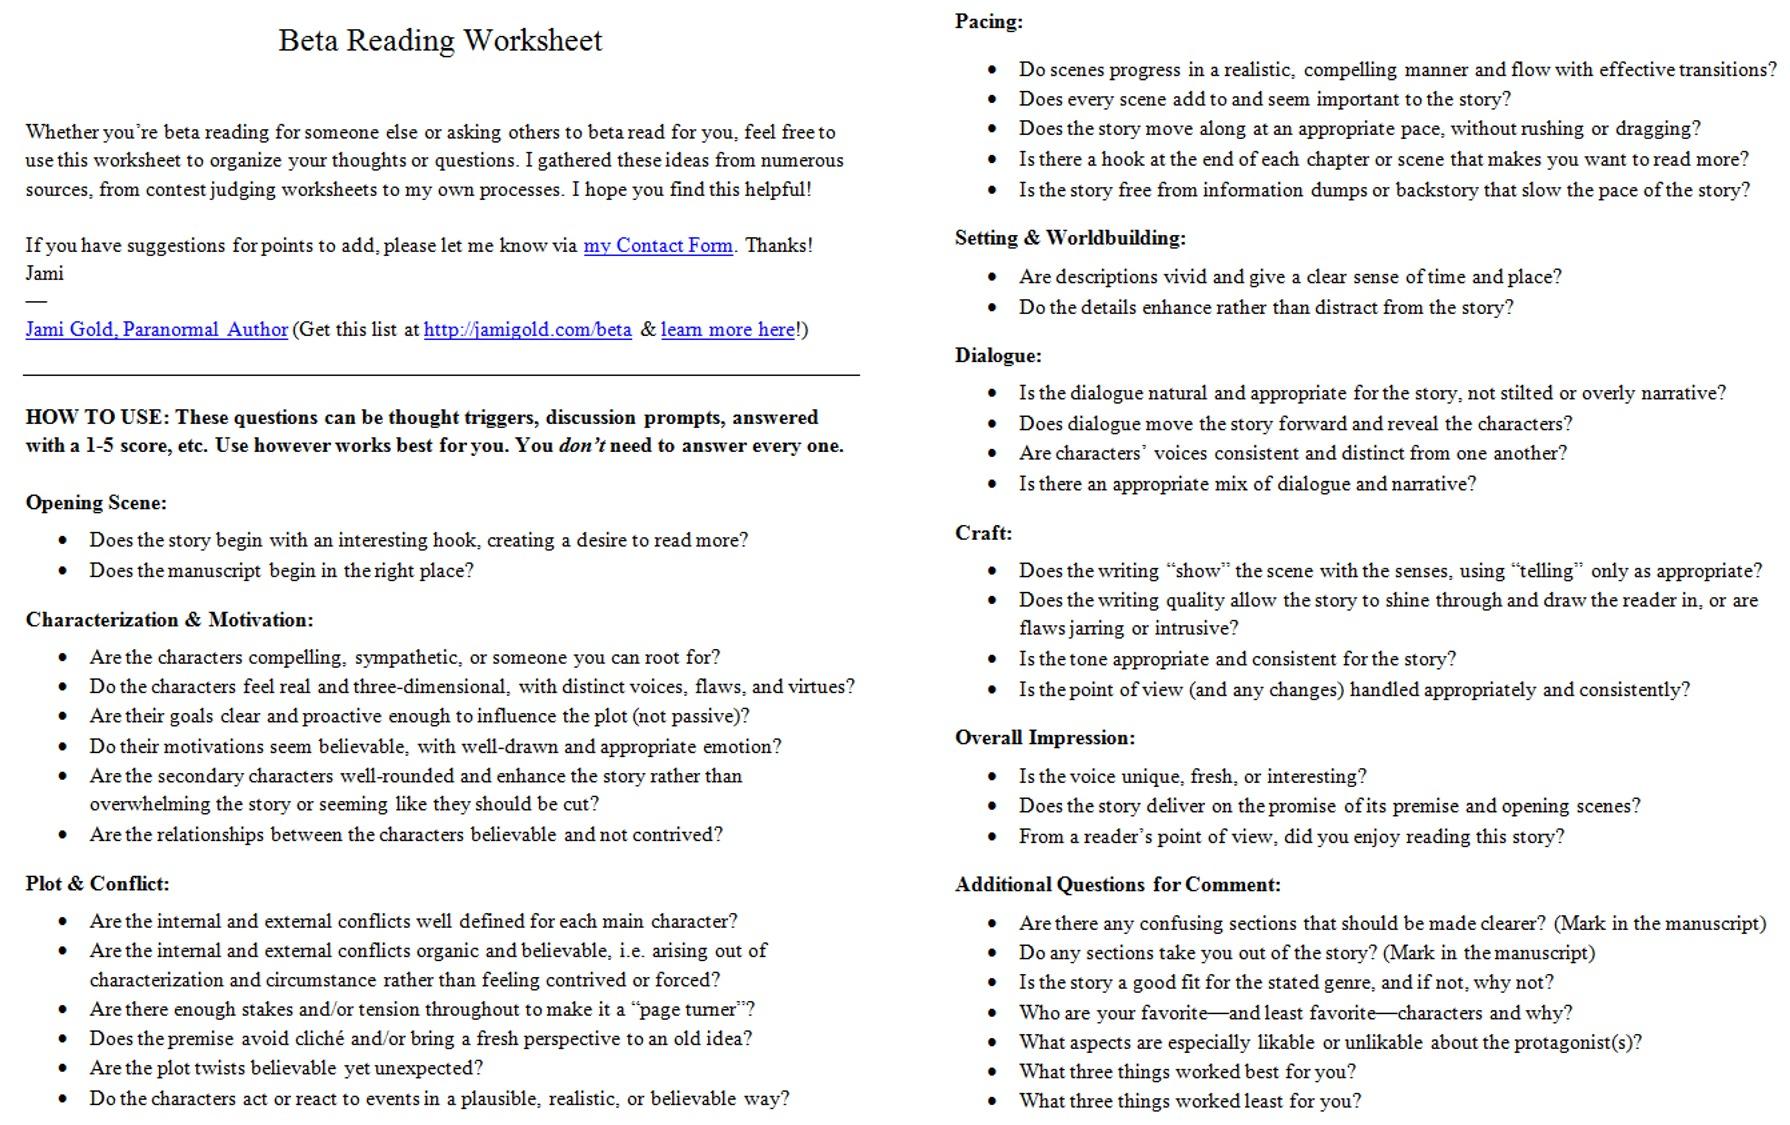 Aldiablosus  Inspiring Worksheets For Writers  Jami Gold Paranormal Author With Extraordinary Screen Shot Of The Twopage Beta Reading Worksheet With Agreeable Synonyms Worksheets For Kindergarten Also Feeling Words Worksheet In Addition Worksheet On Ordinal Numbers And Maths Comprehension Worksheets As Well As Simple Present Vs Present Continuous Worksheet Additionally Ou Phonics Worksheets From Jamigoldcom With Aldiablosus  Extraordinary Worksheets For Writers  Jami Gold Paranormal Author With Agreeable Screen Shot Of The Twopage Beta Reading Worksheet And Inspiring Synonyms Worksheets For Kindergarten Also Feeling Words Worksheet In Addition Worksheet On Ordinal Numbers From Jamigoldcom